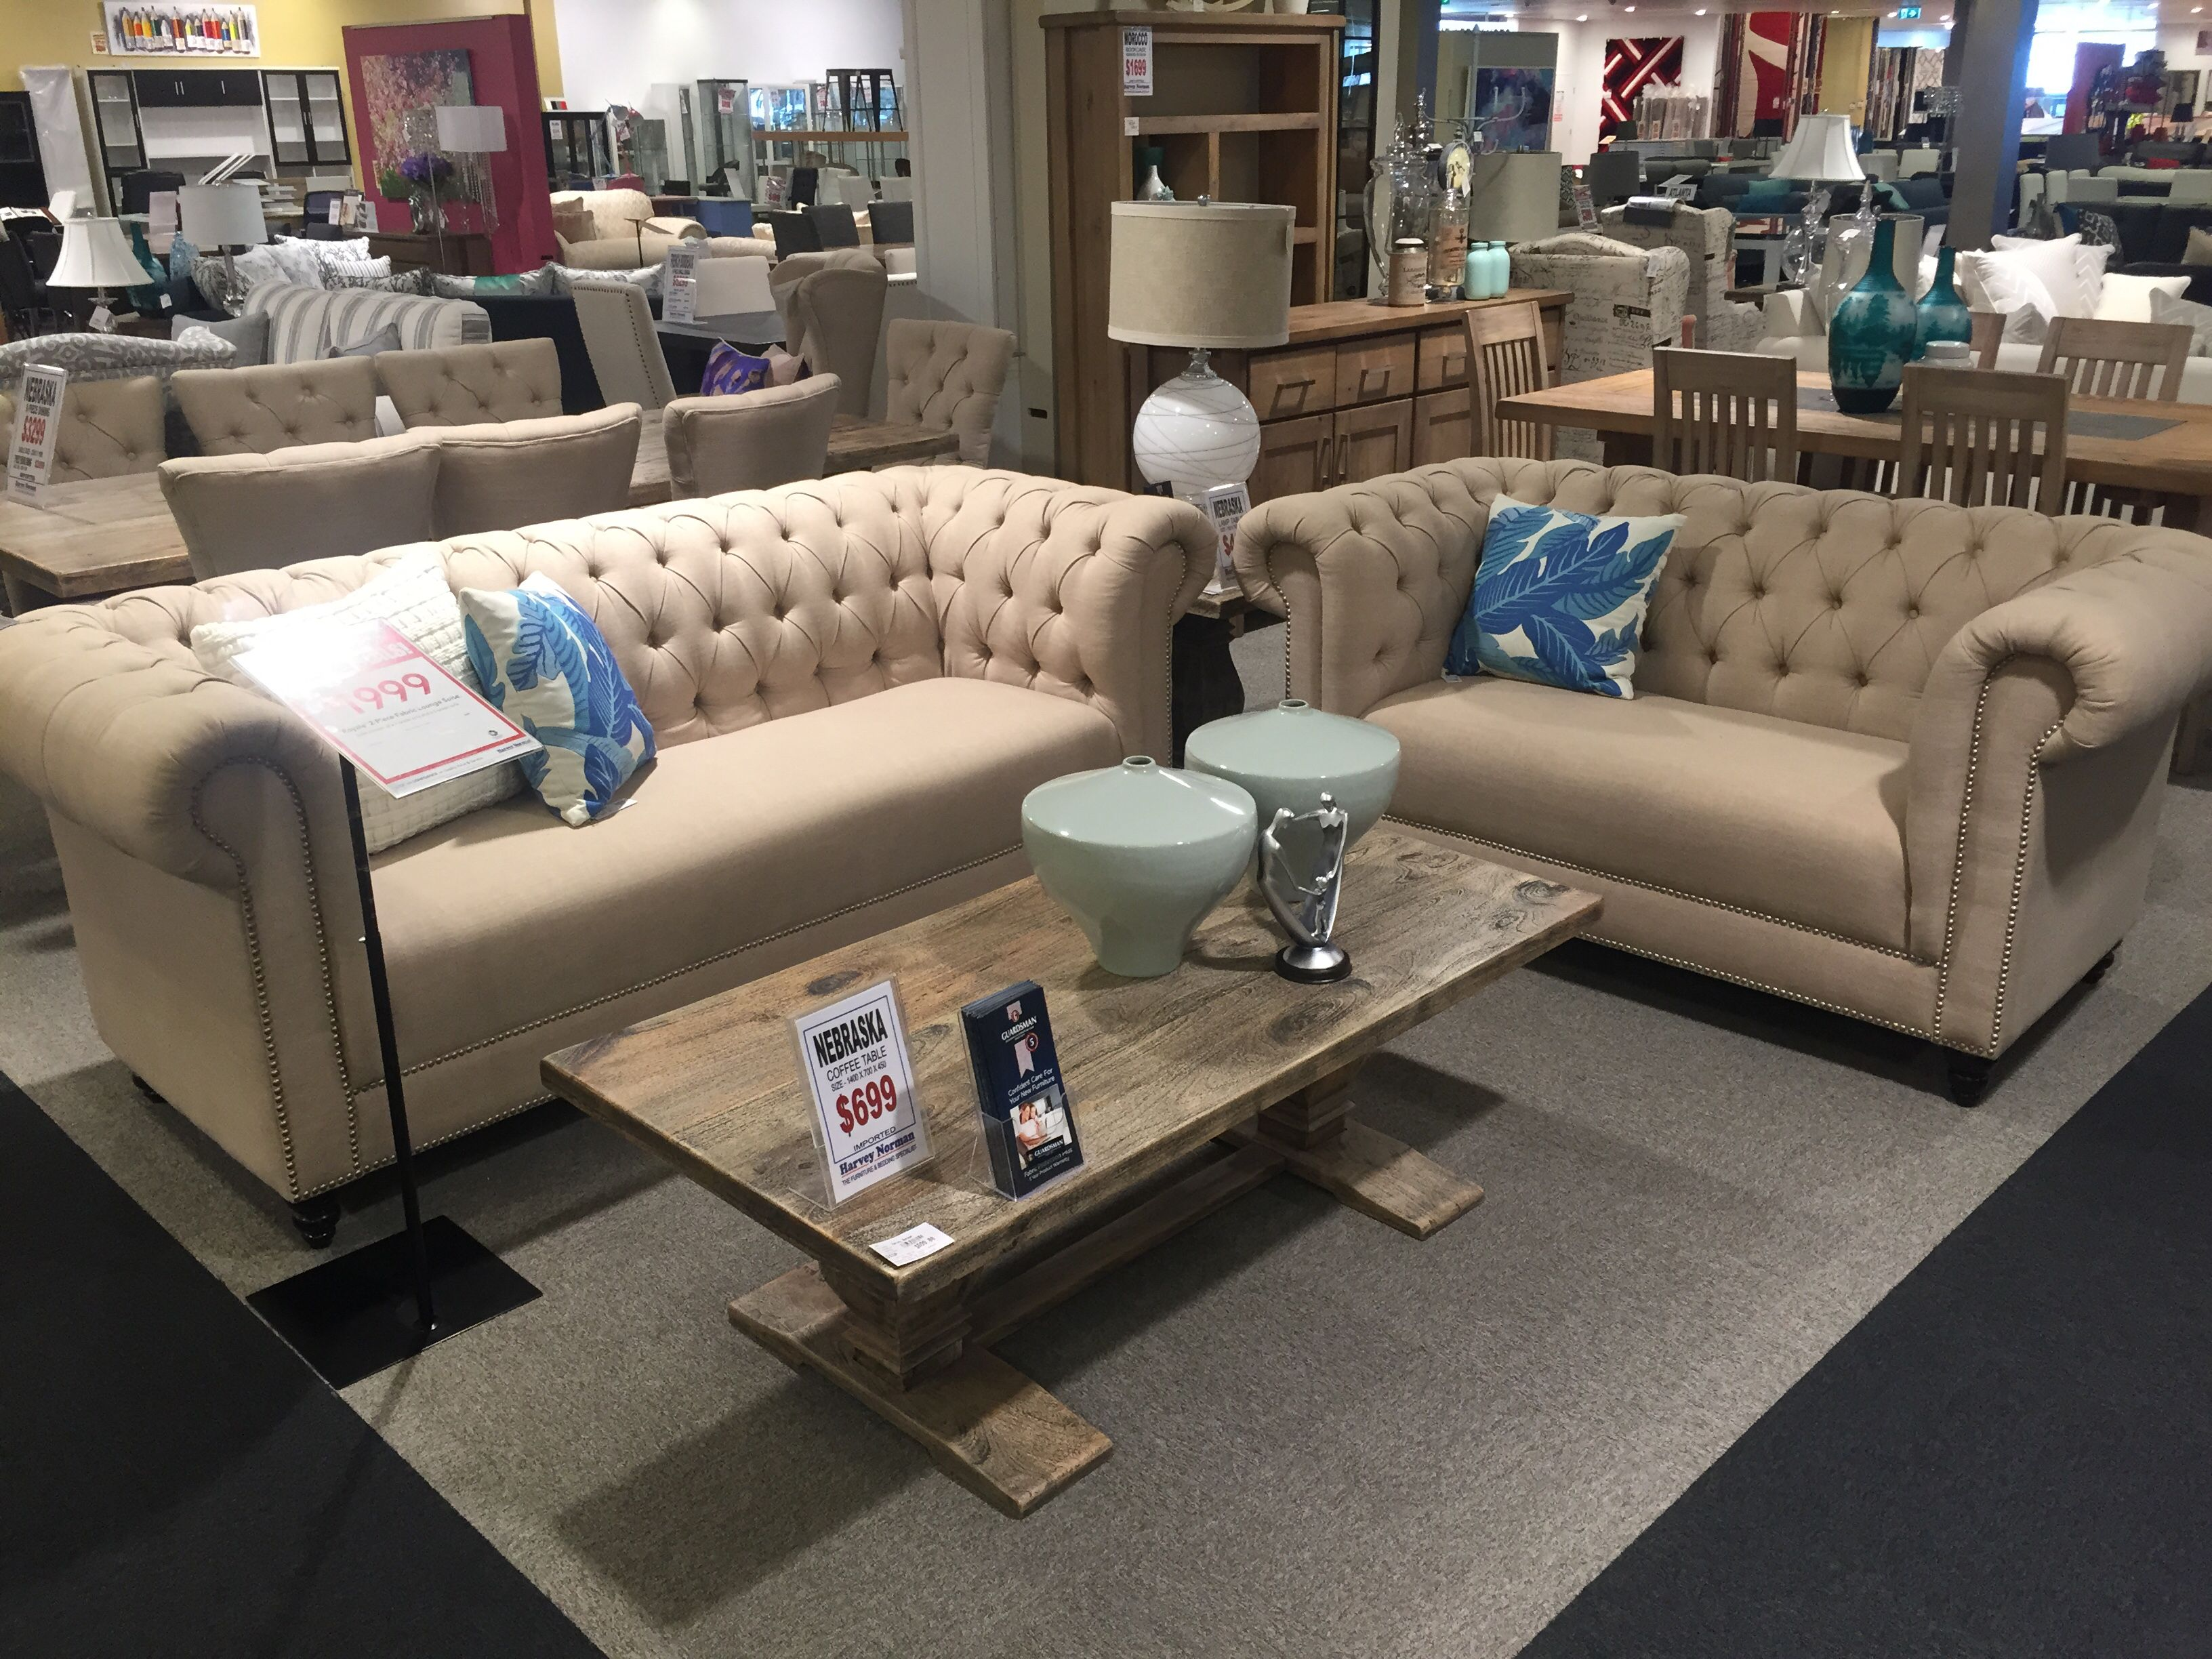 Royale imported at harvey norman 3 seater 210x95 2 seater 166x95